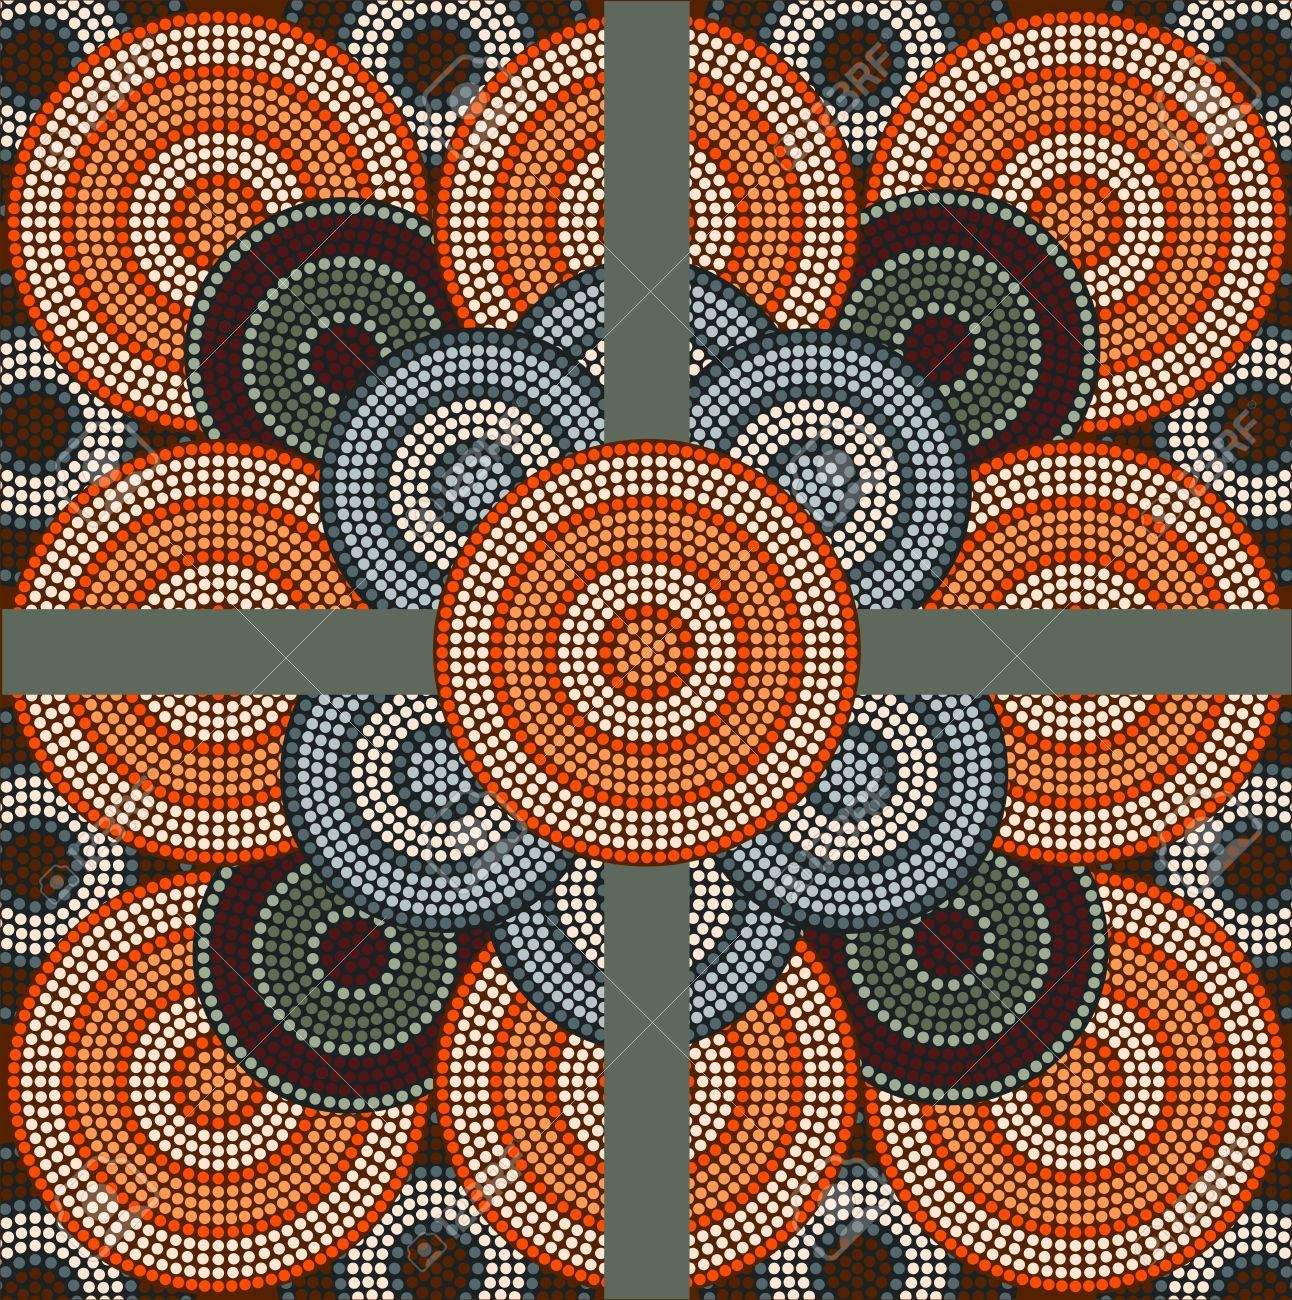 A Illustration Based On Aboriginal Style Of Dot